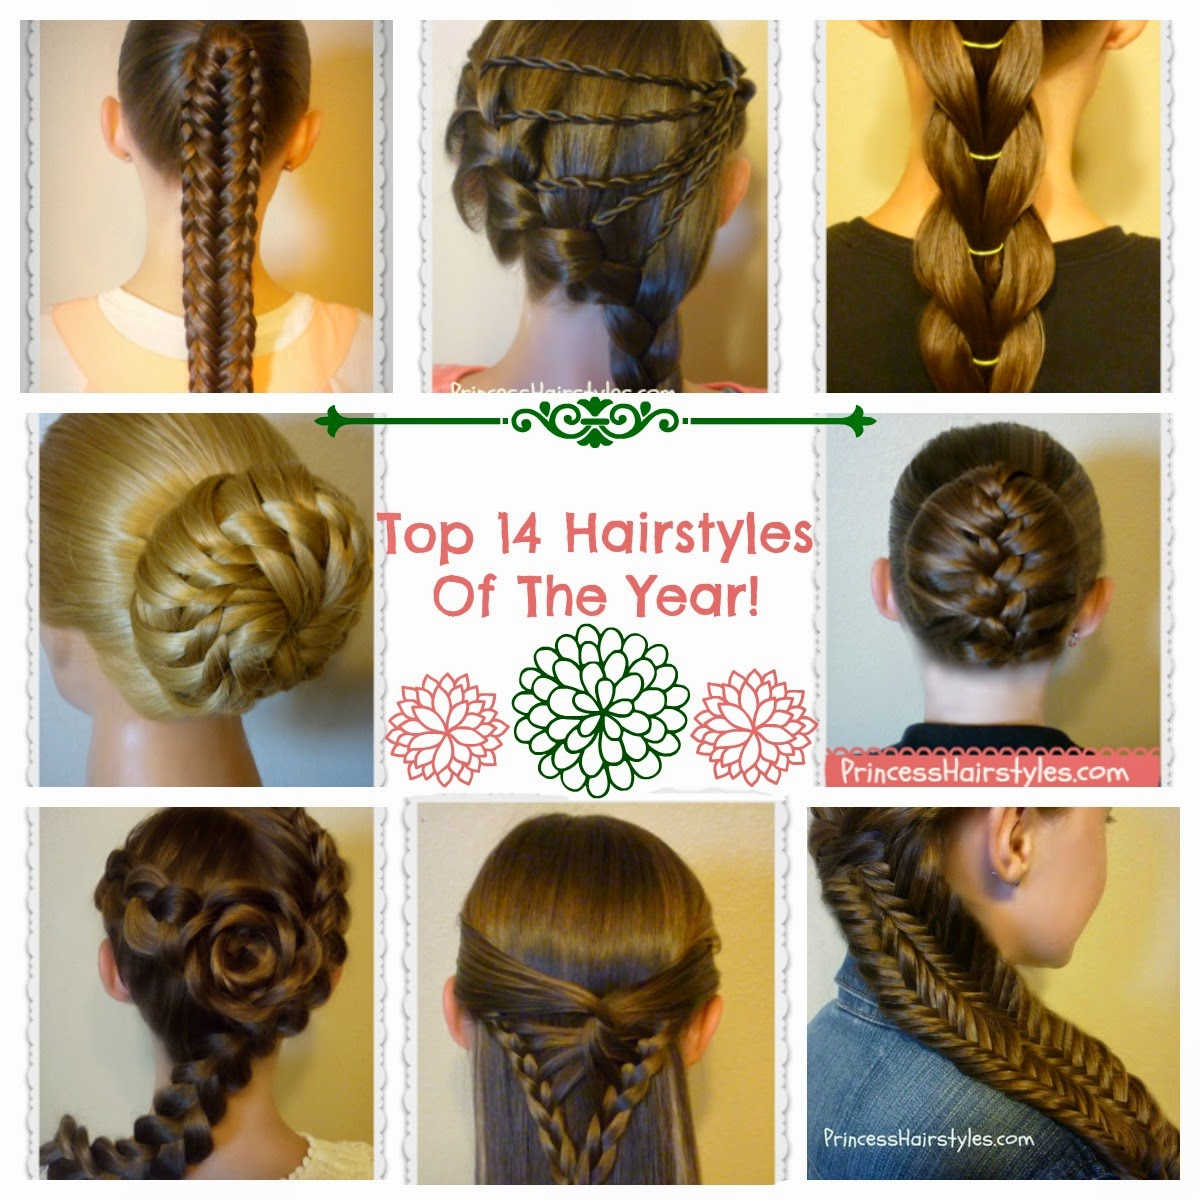 Magnificent Top Hairstyles Of 2014 Hairstyles For Girls Princess Hairstyles Short Hairstyles Gunalazisus